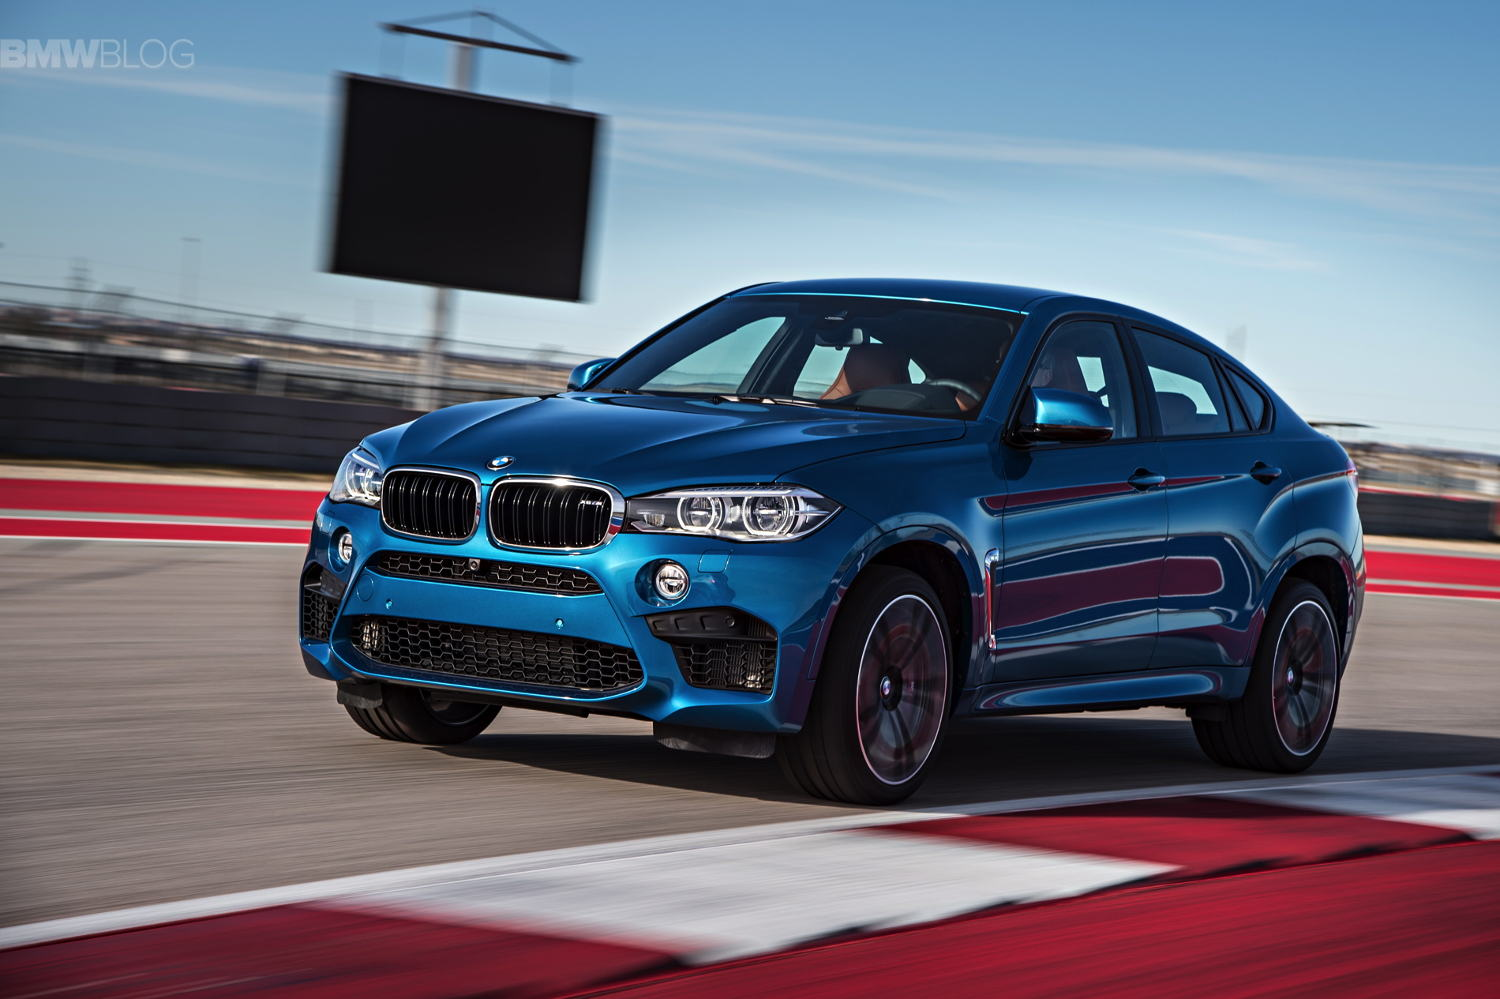 Comparison Bmw X6 M 2015 Vs Bmw X6 M 2017 Suv Drive